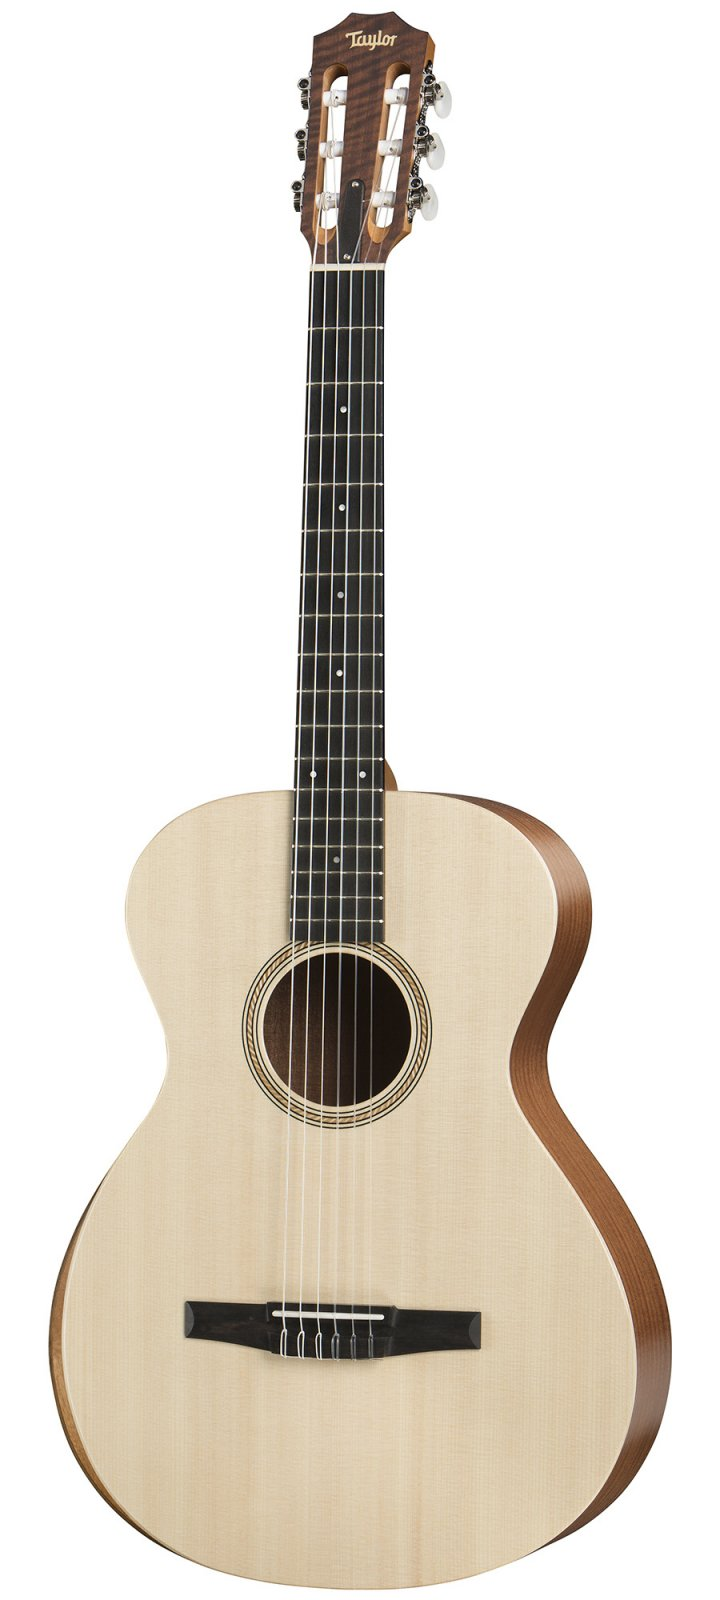 Taylor Academy 12e-N Nylon String Acoustic/Electric Guitar with Deluxe Gigbag